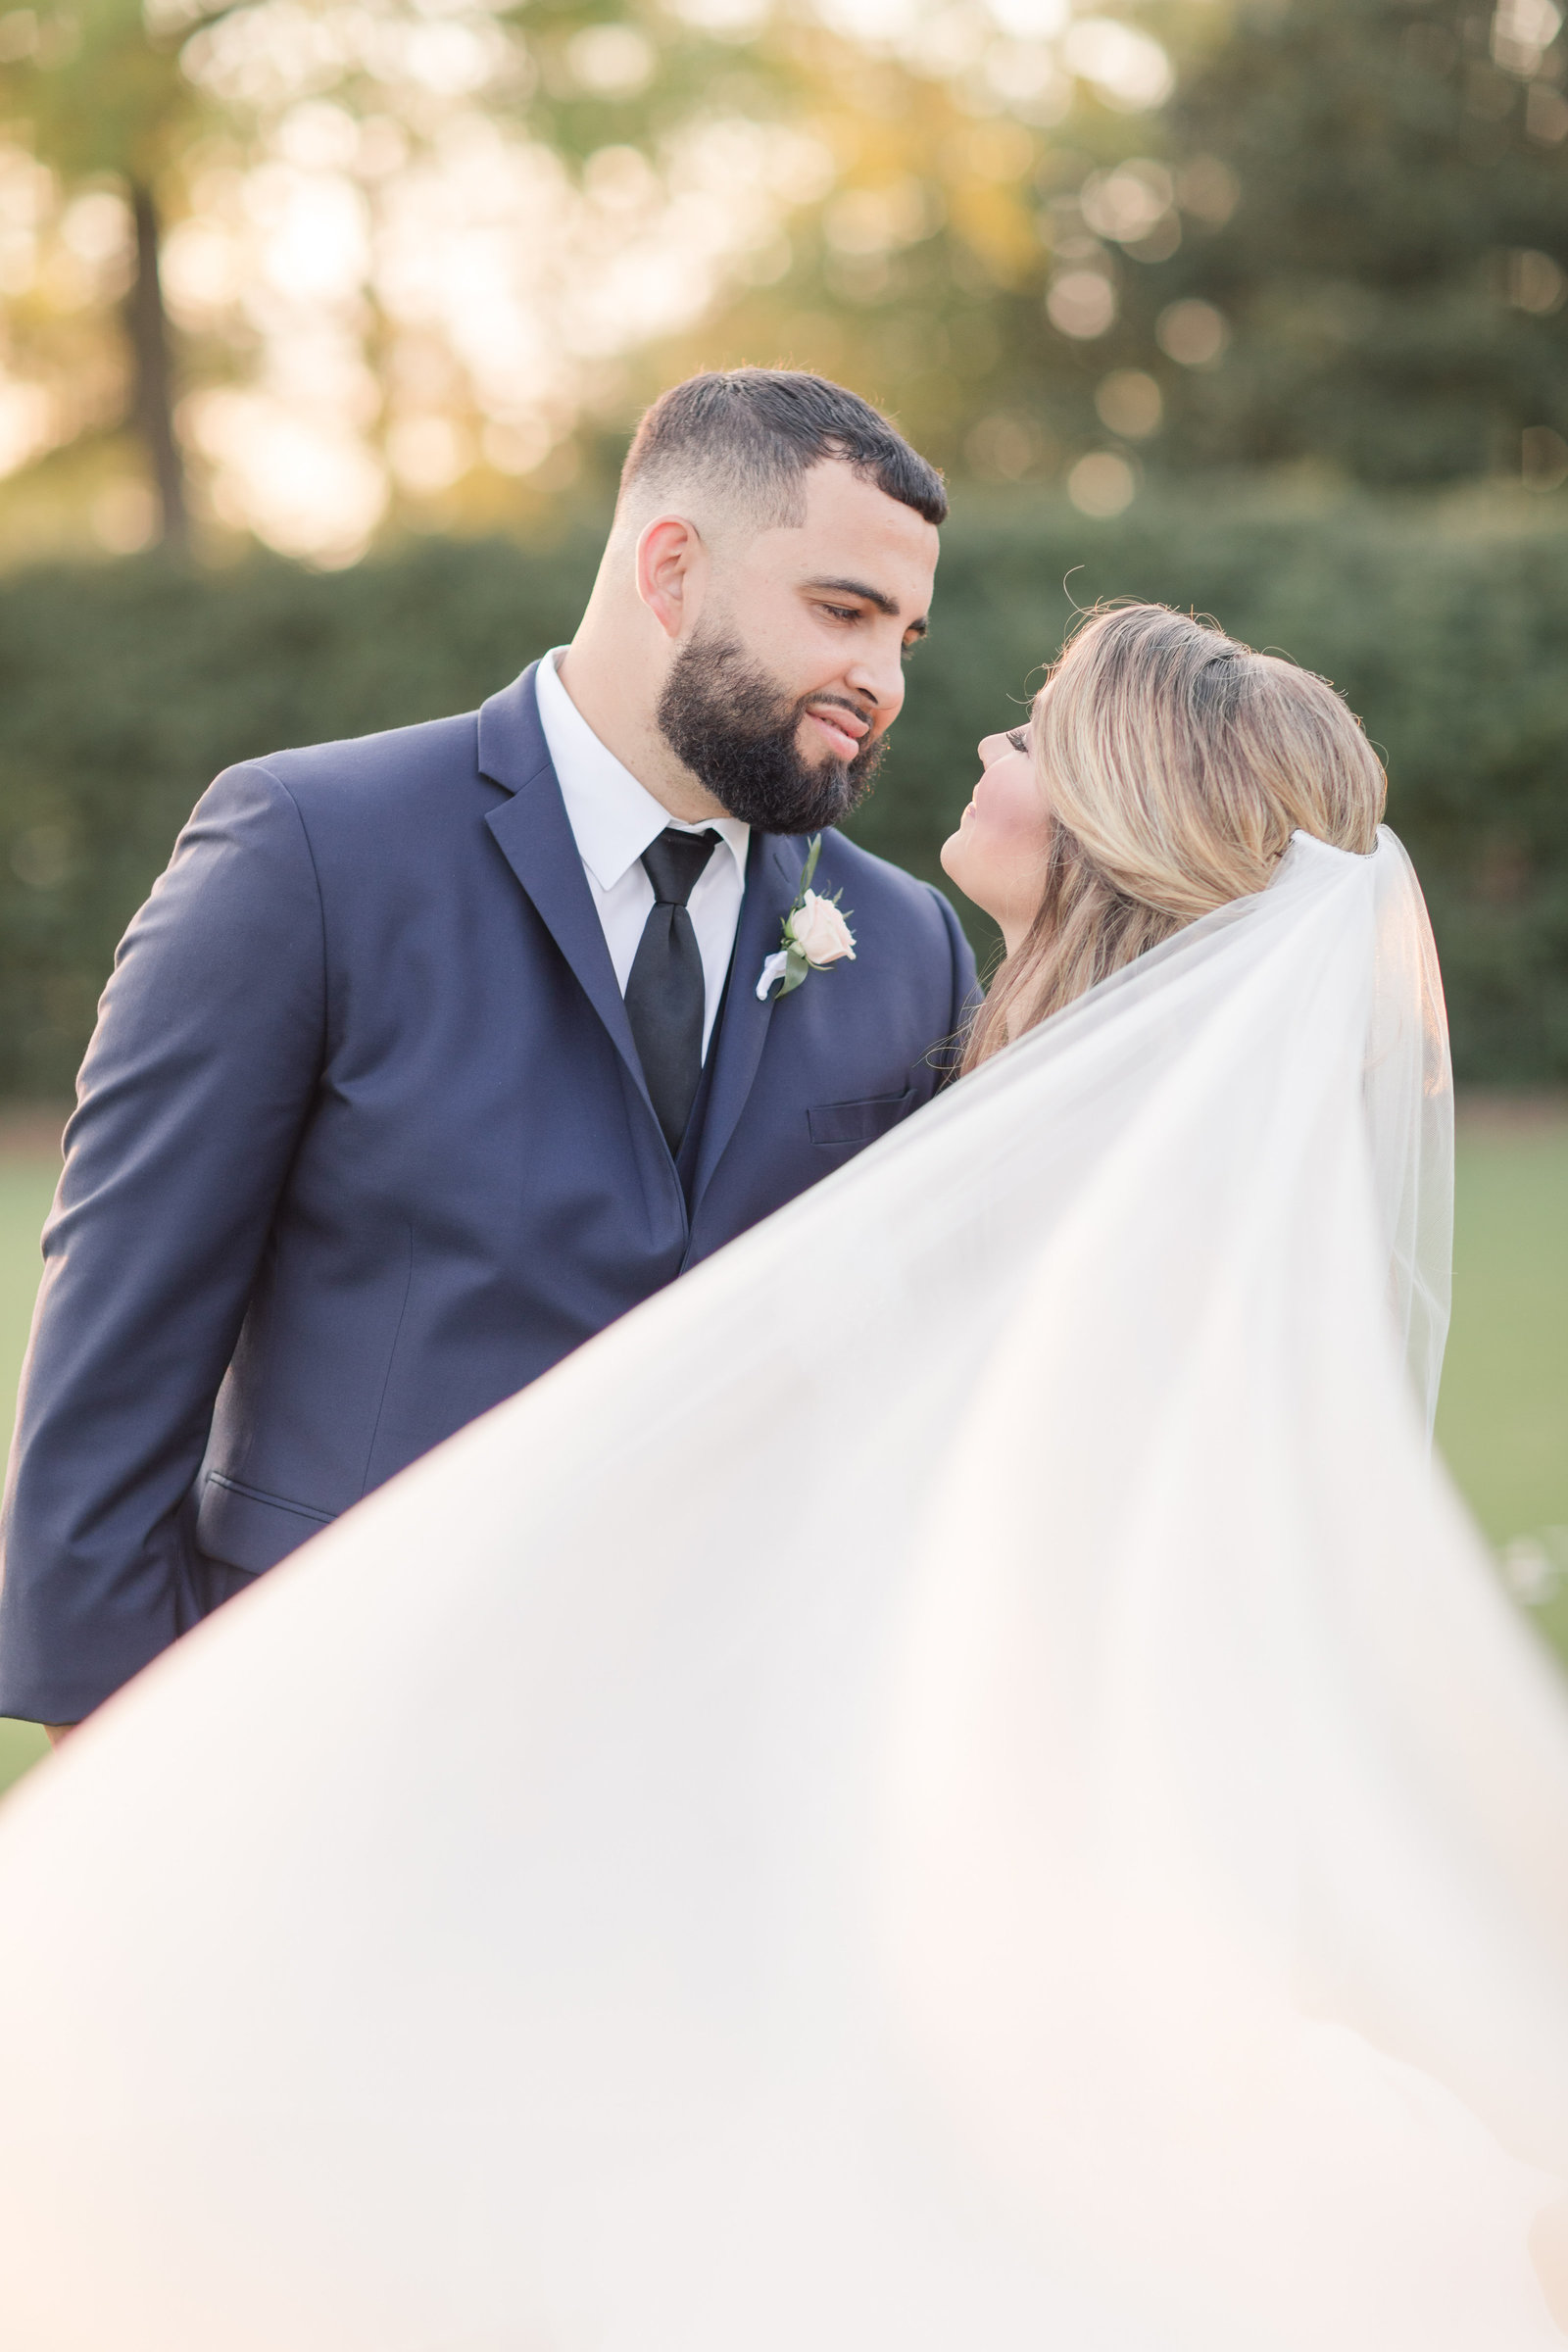 Jennifer_B_Photography-Pinehurst_Club-Pinehurst_NC-Wedding_Day-Caleb___Miranda-JB_Favs-2019-0214